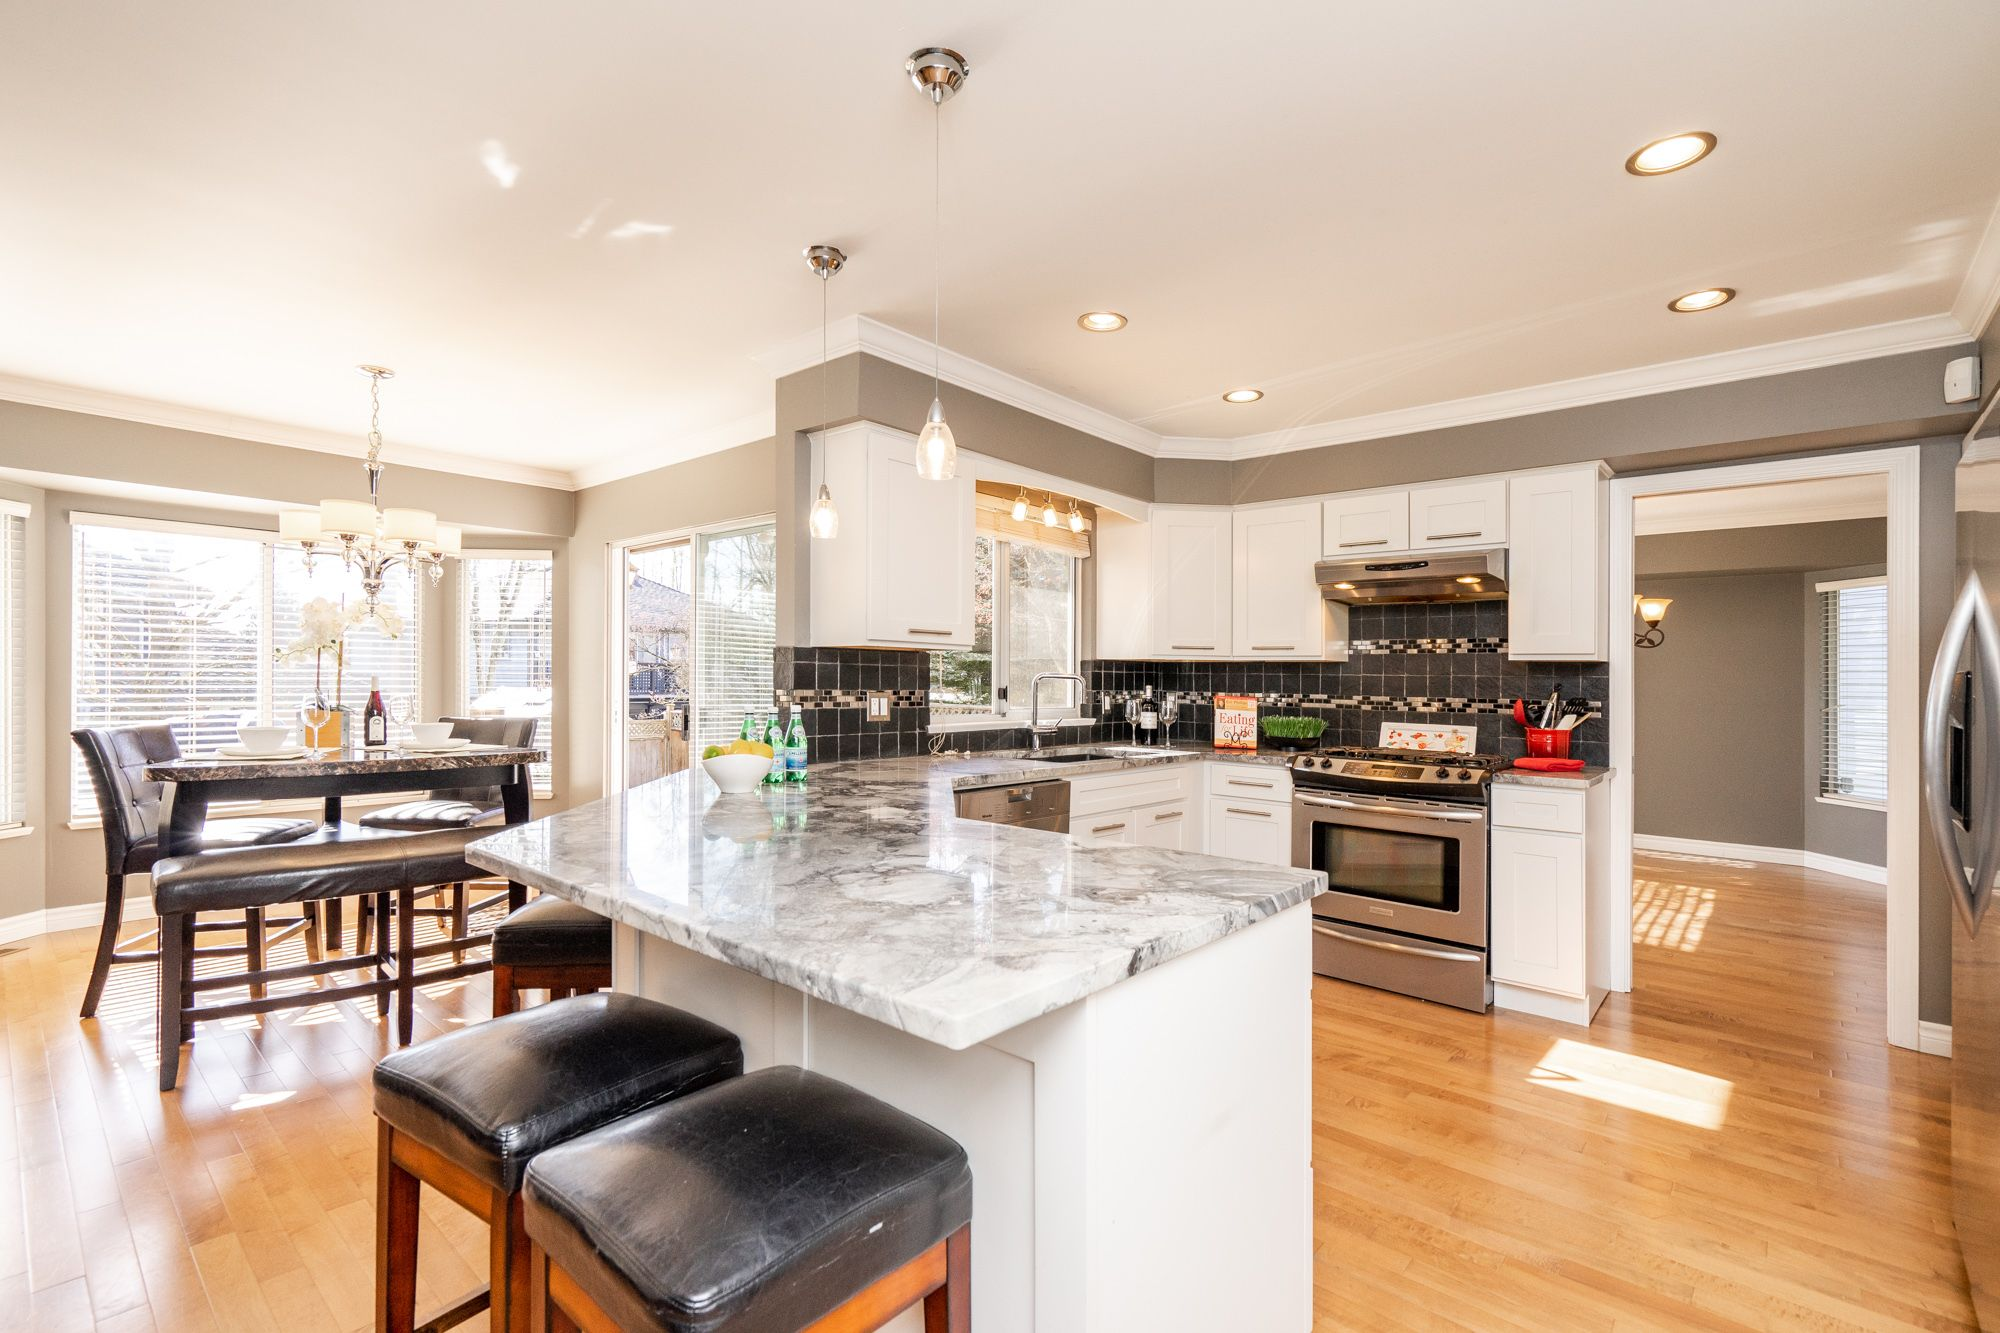 """Photo 4: Photos: 8448 213 Street in Langley: Walnut Grove House for sale in """"Forest Hills"""" : MLS®# R2259409"""